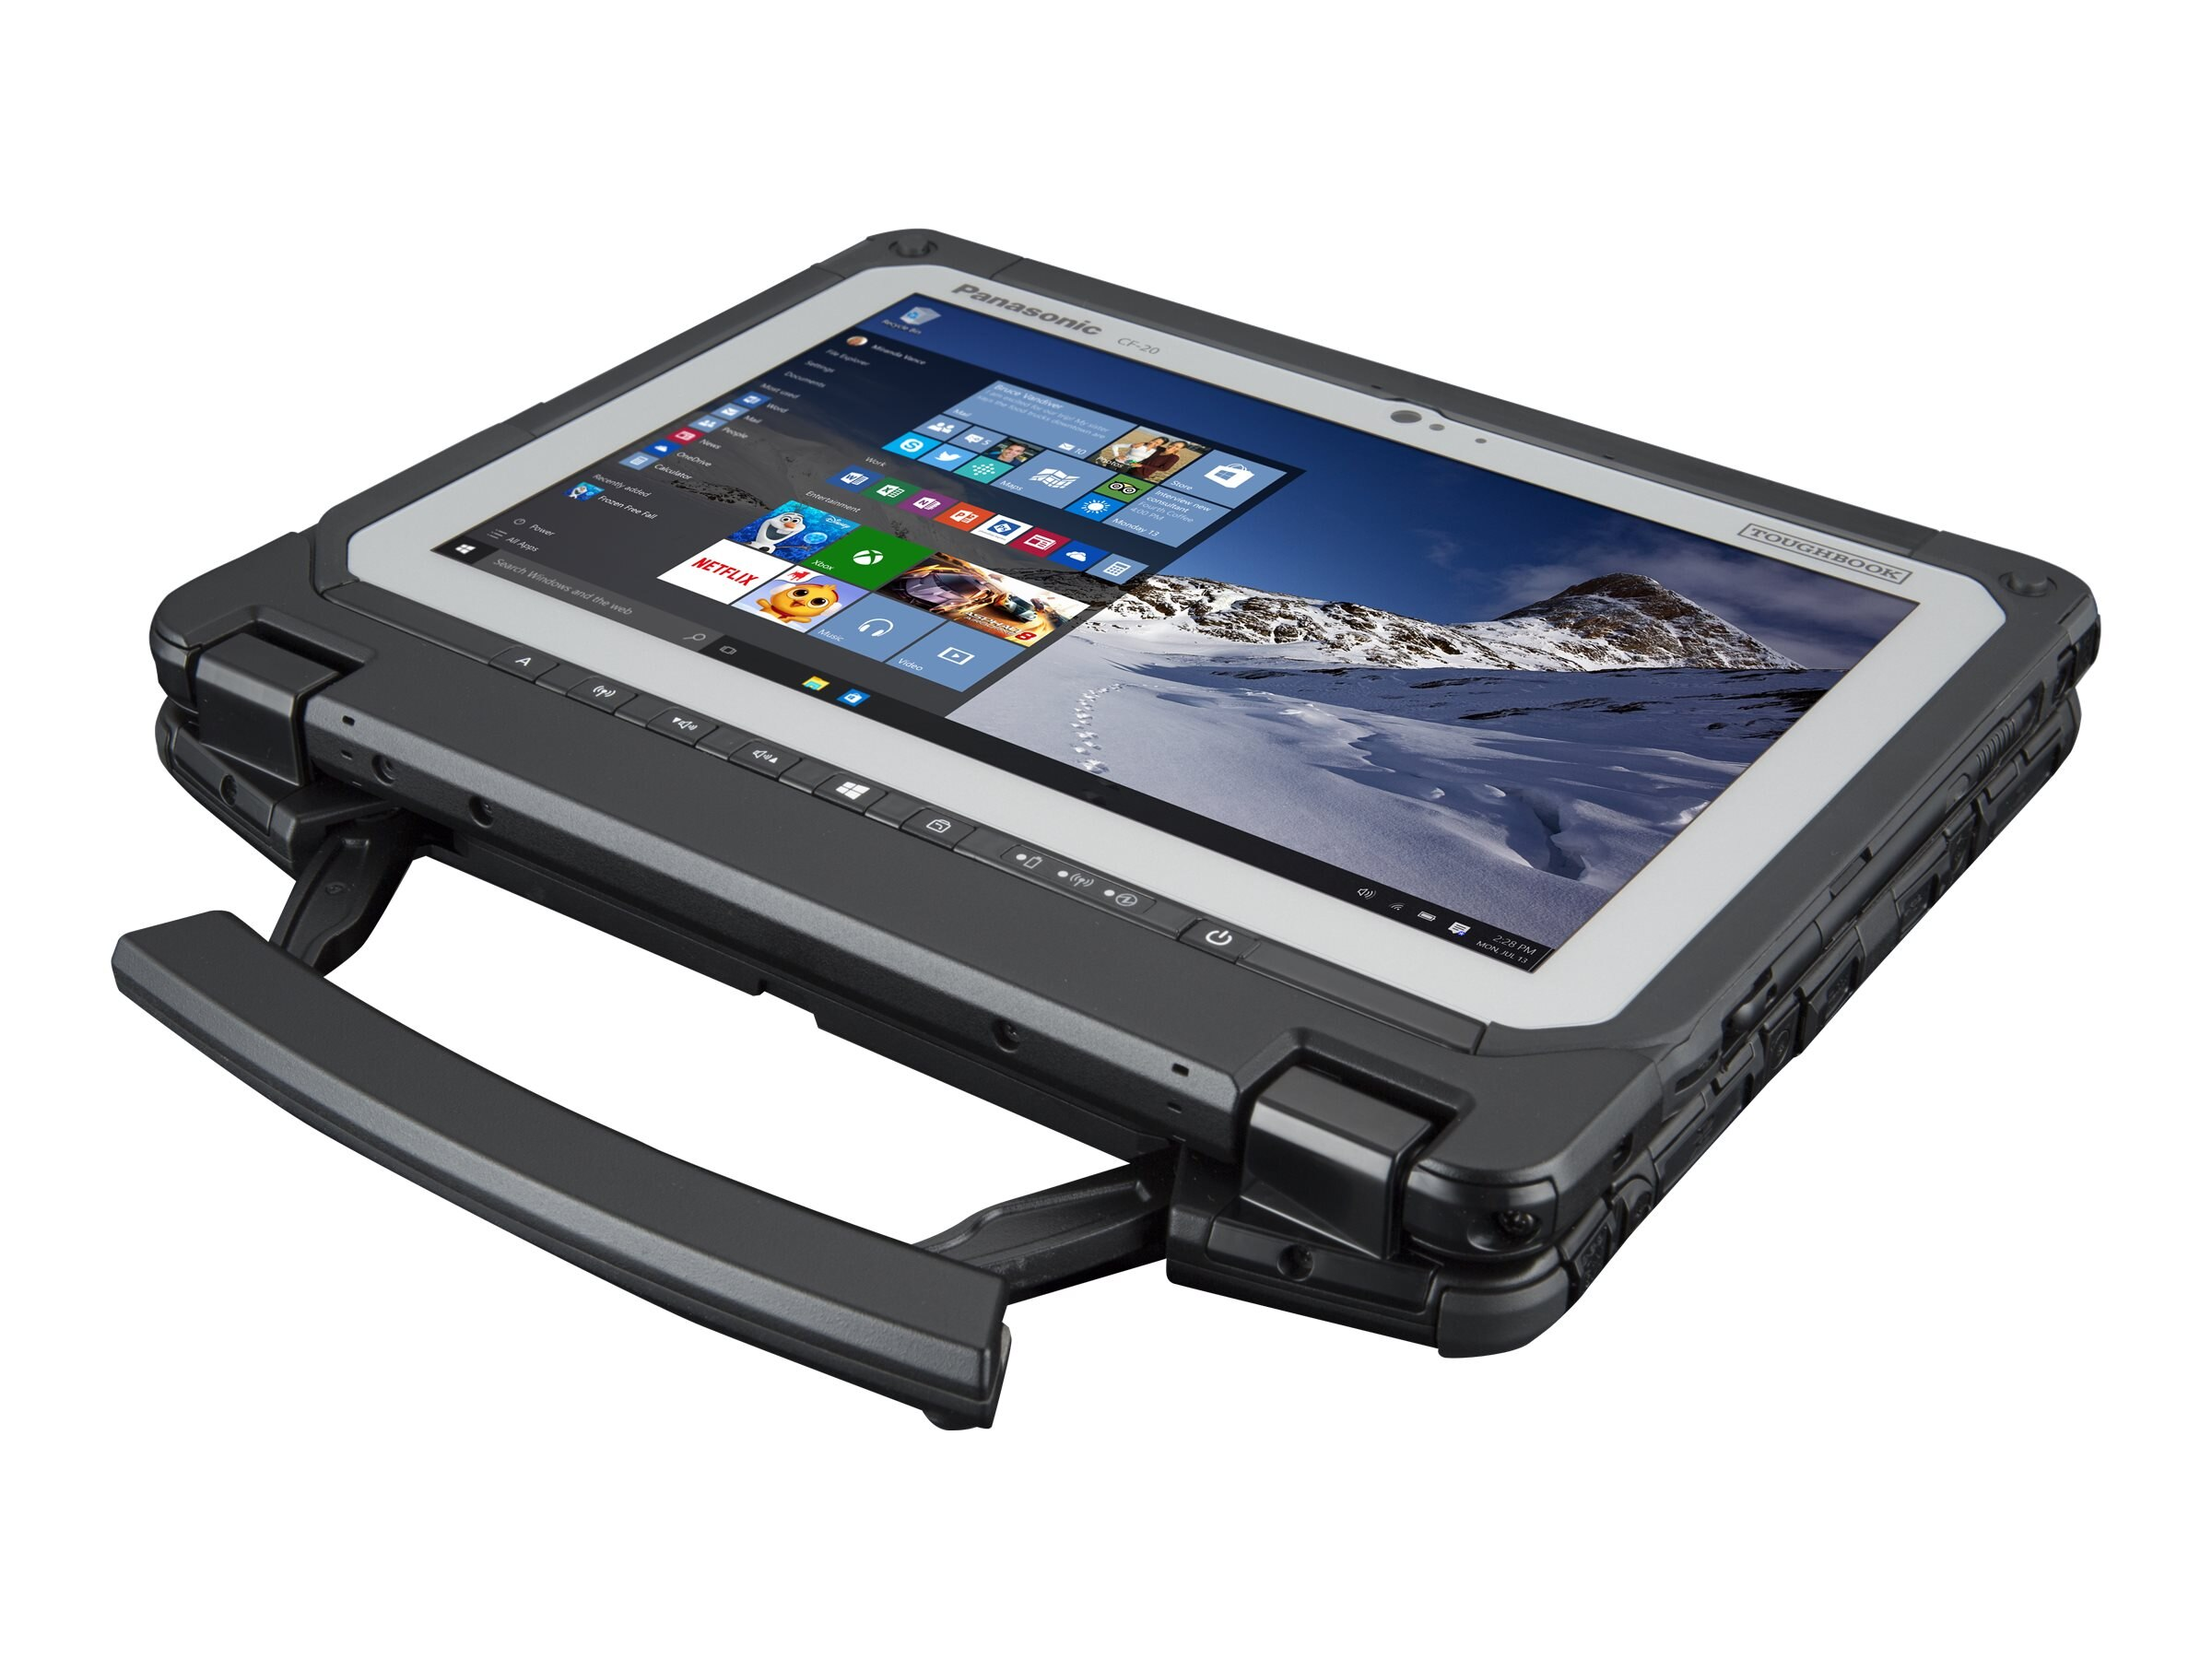 Panasonic Toughbook 20 10.1 WUXGA MT, CF-20ASP11VM